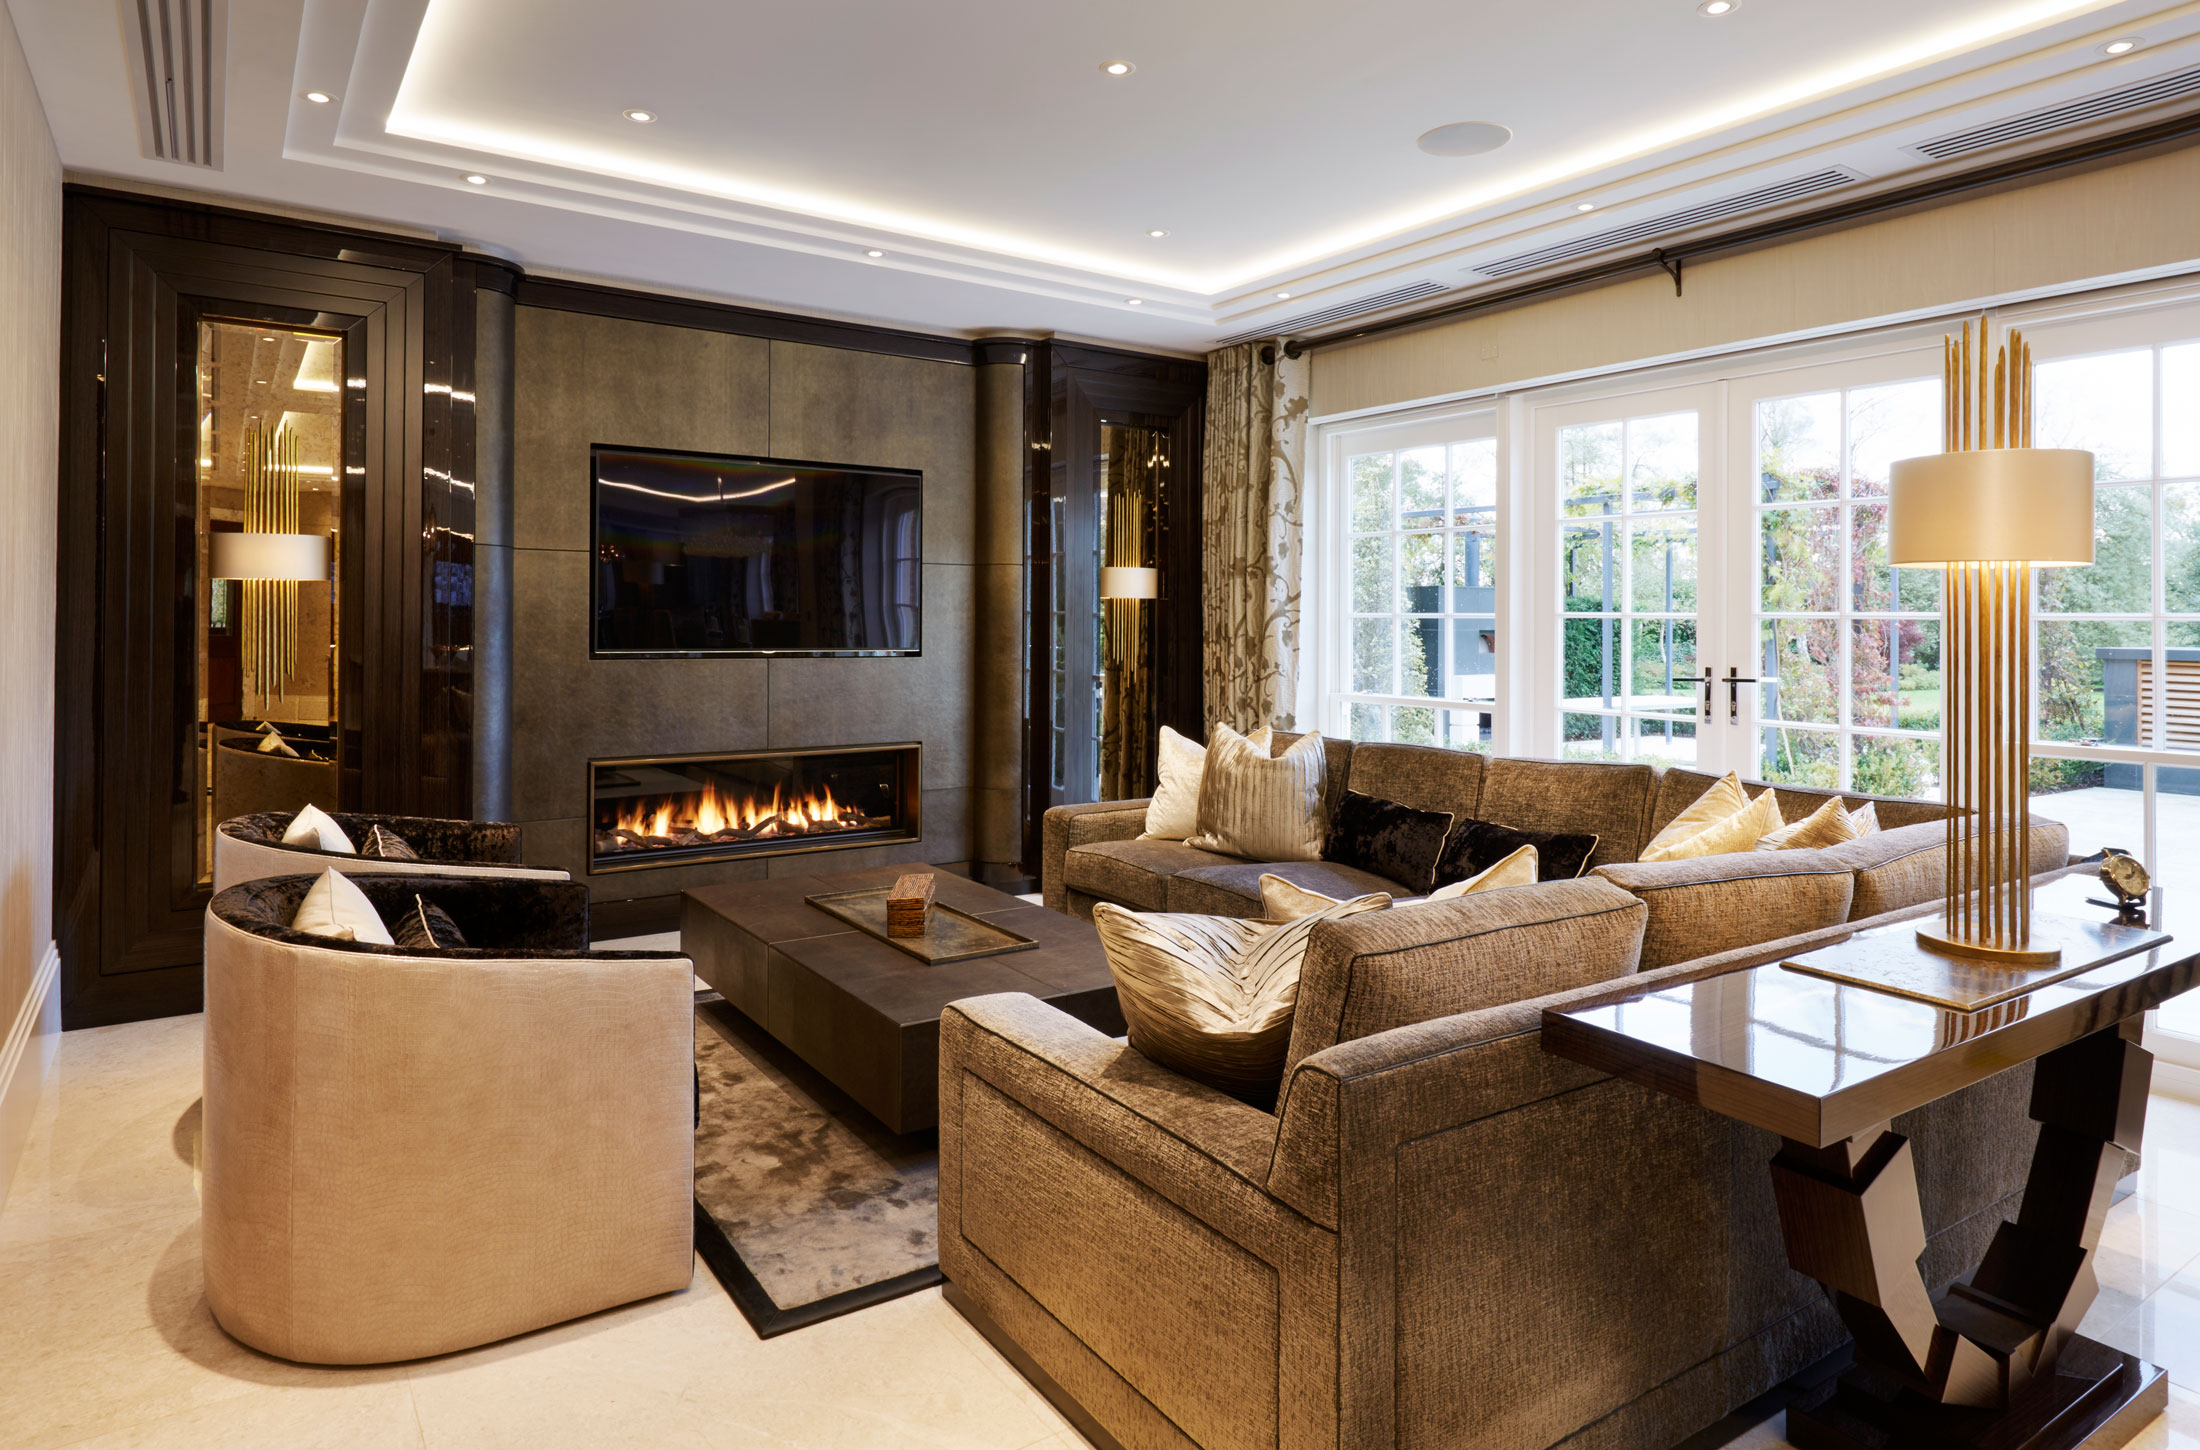 Interior Design Furniture: Luxury Interior Design & Furniture